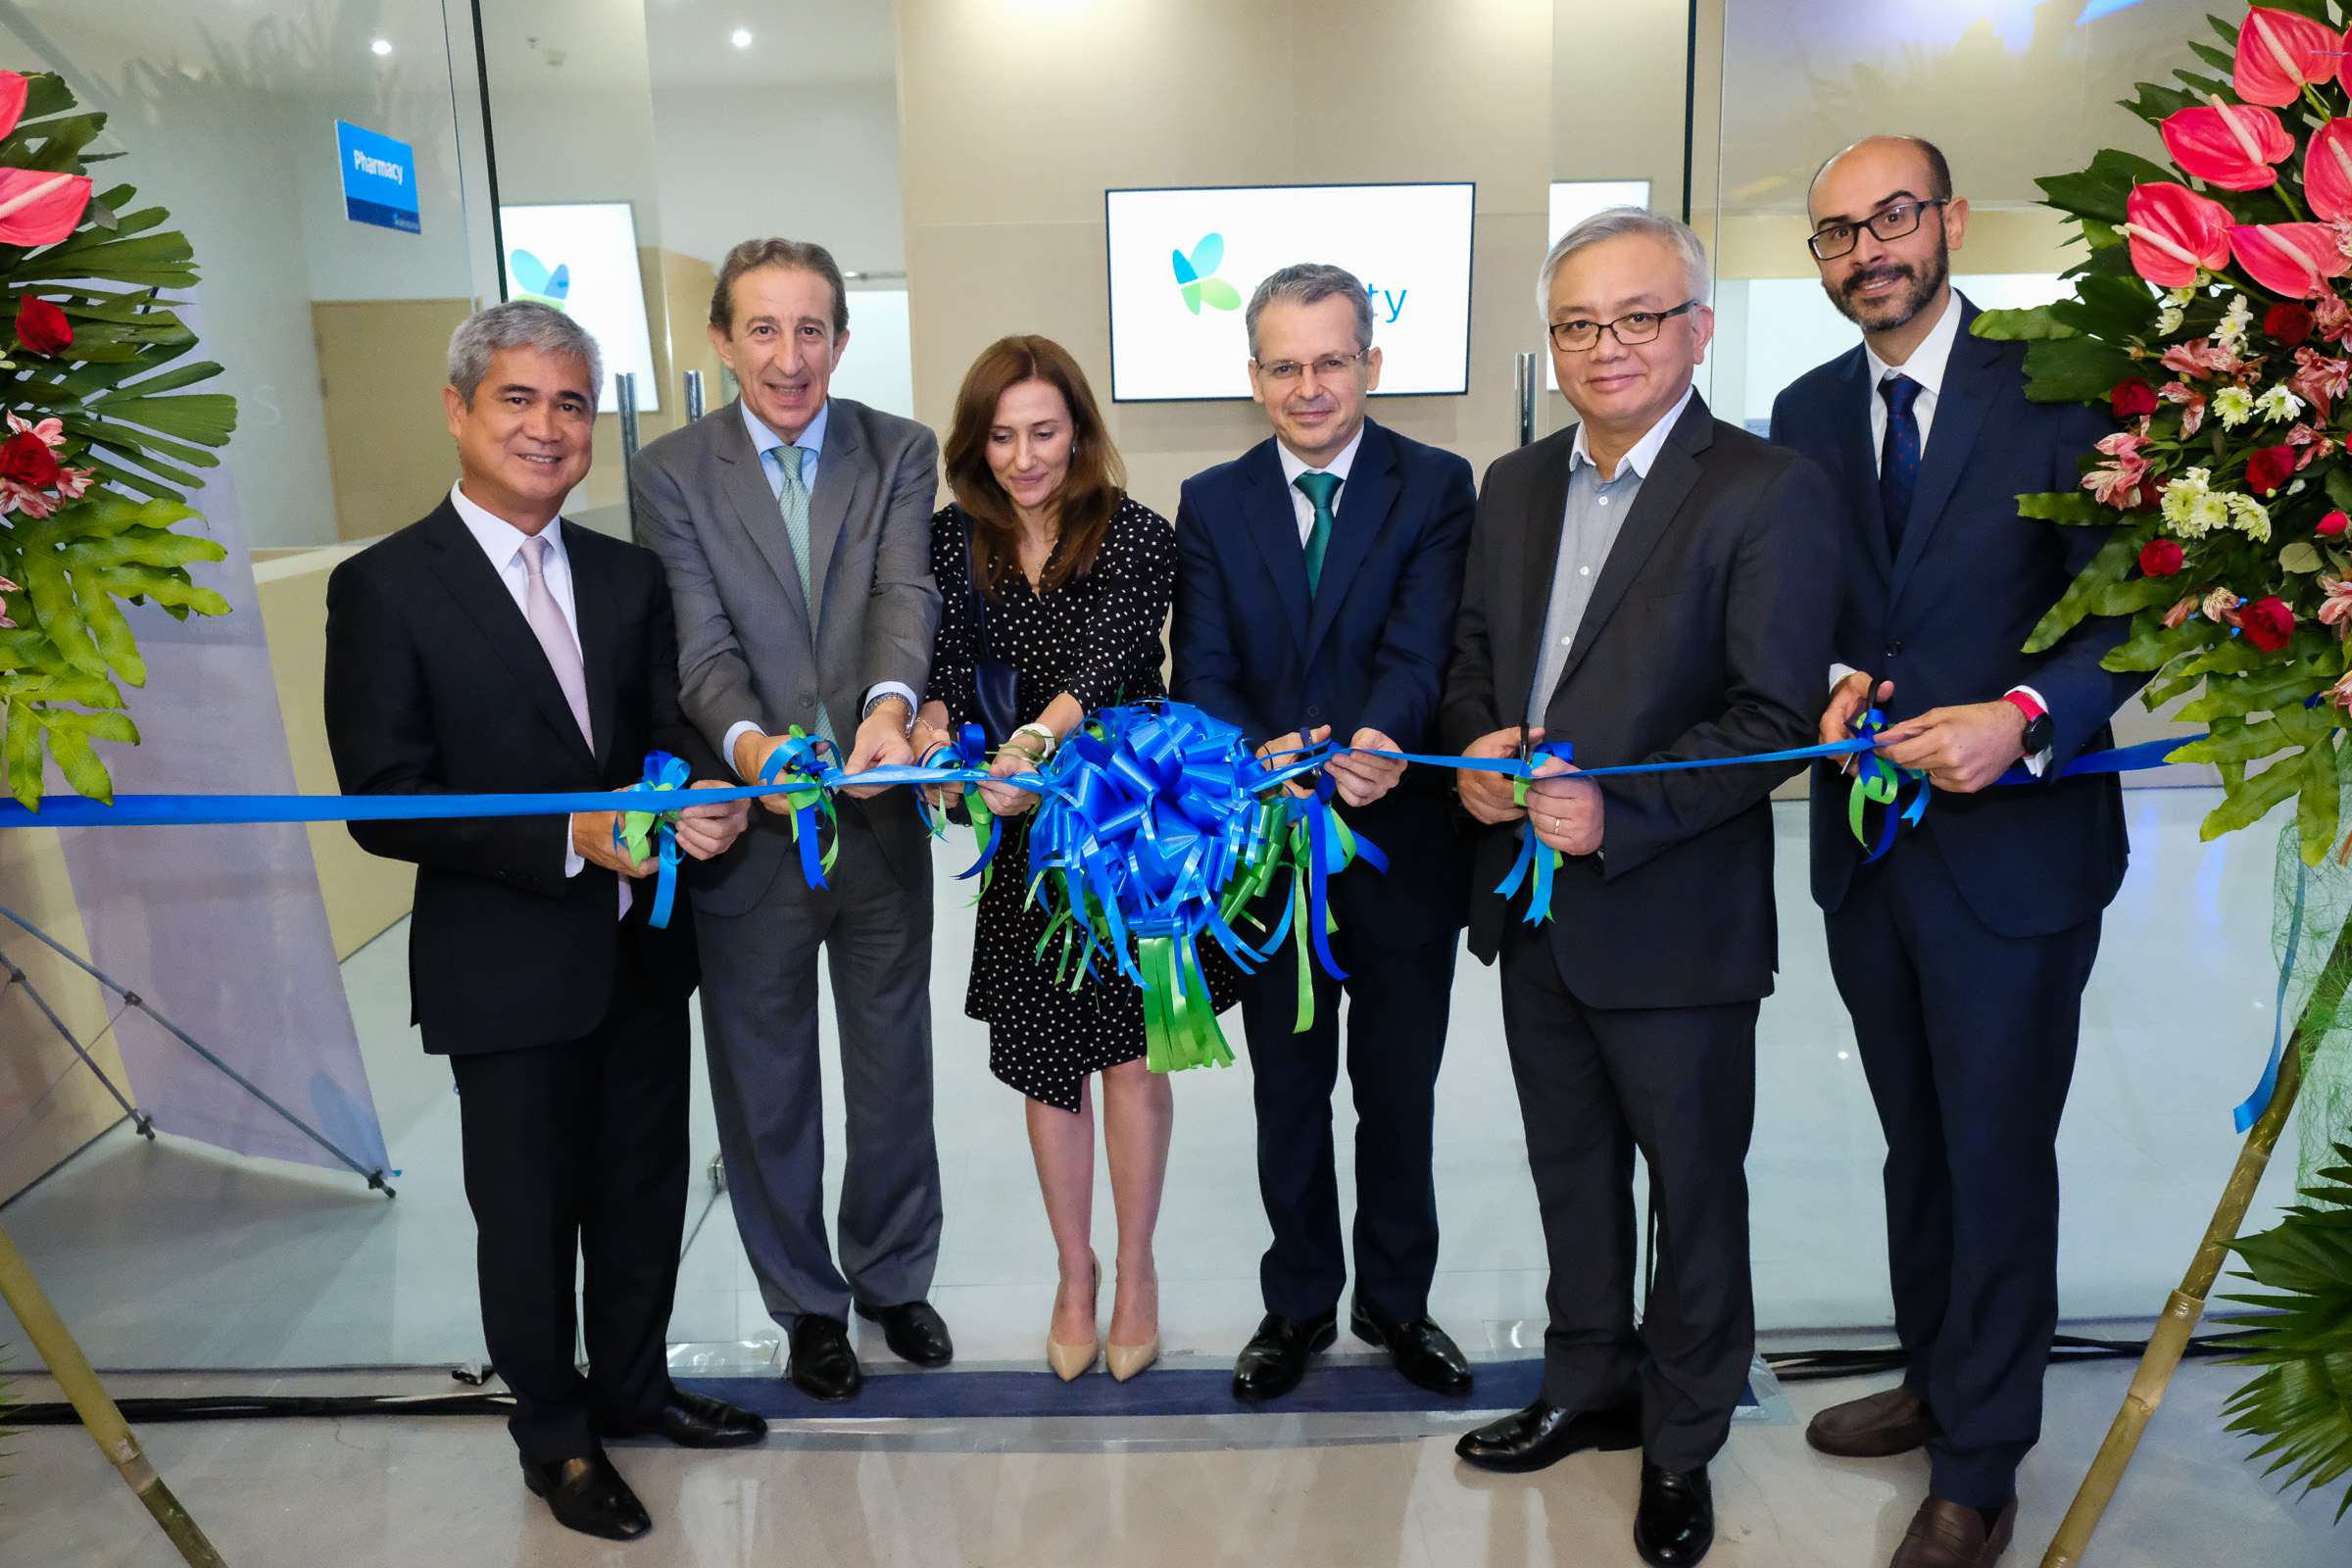 MetroSanitas Met Live clinic, the first outpatient-surgery-clinic built together by Metro Pacific and Keralty in the Philippines